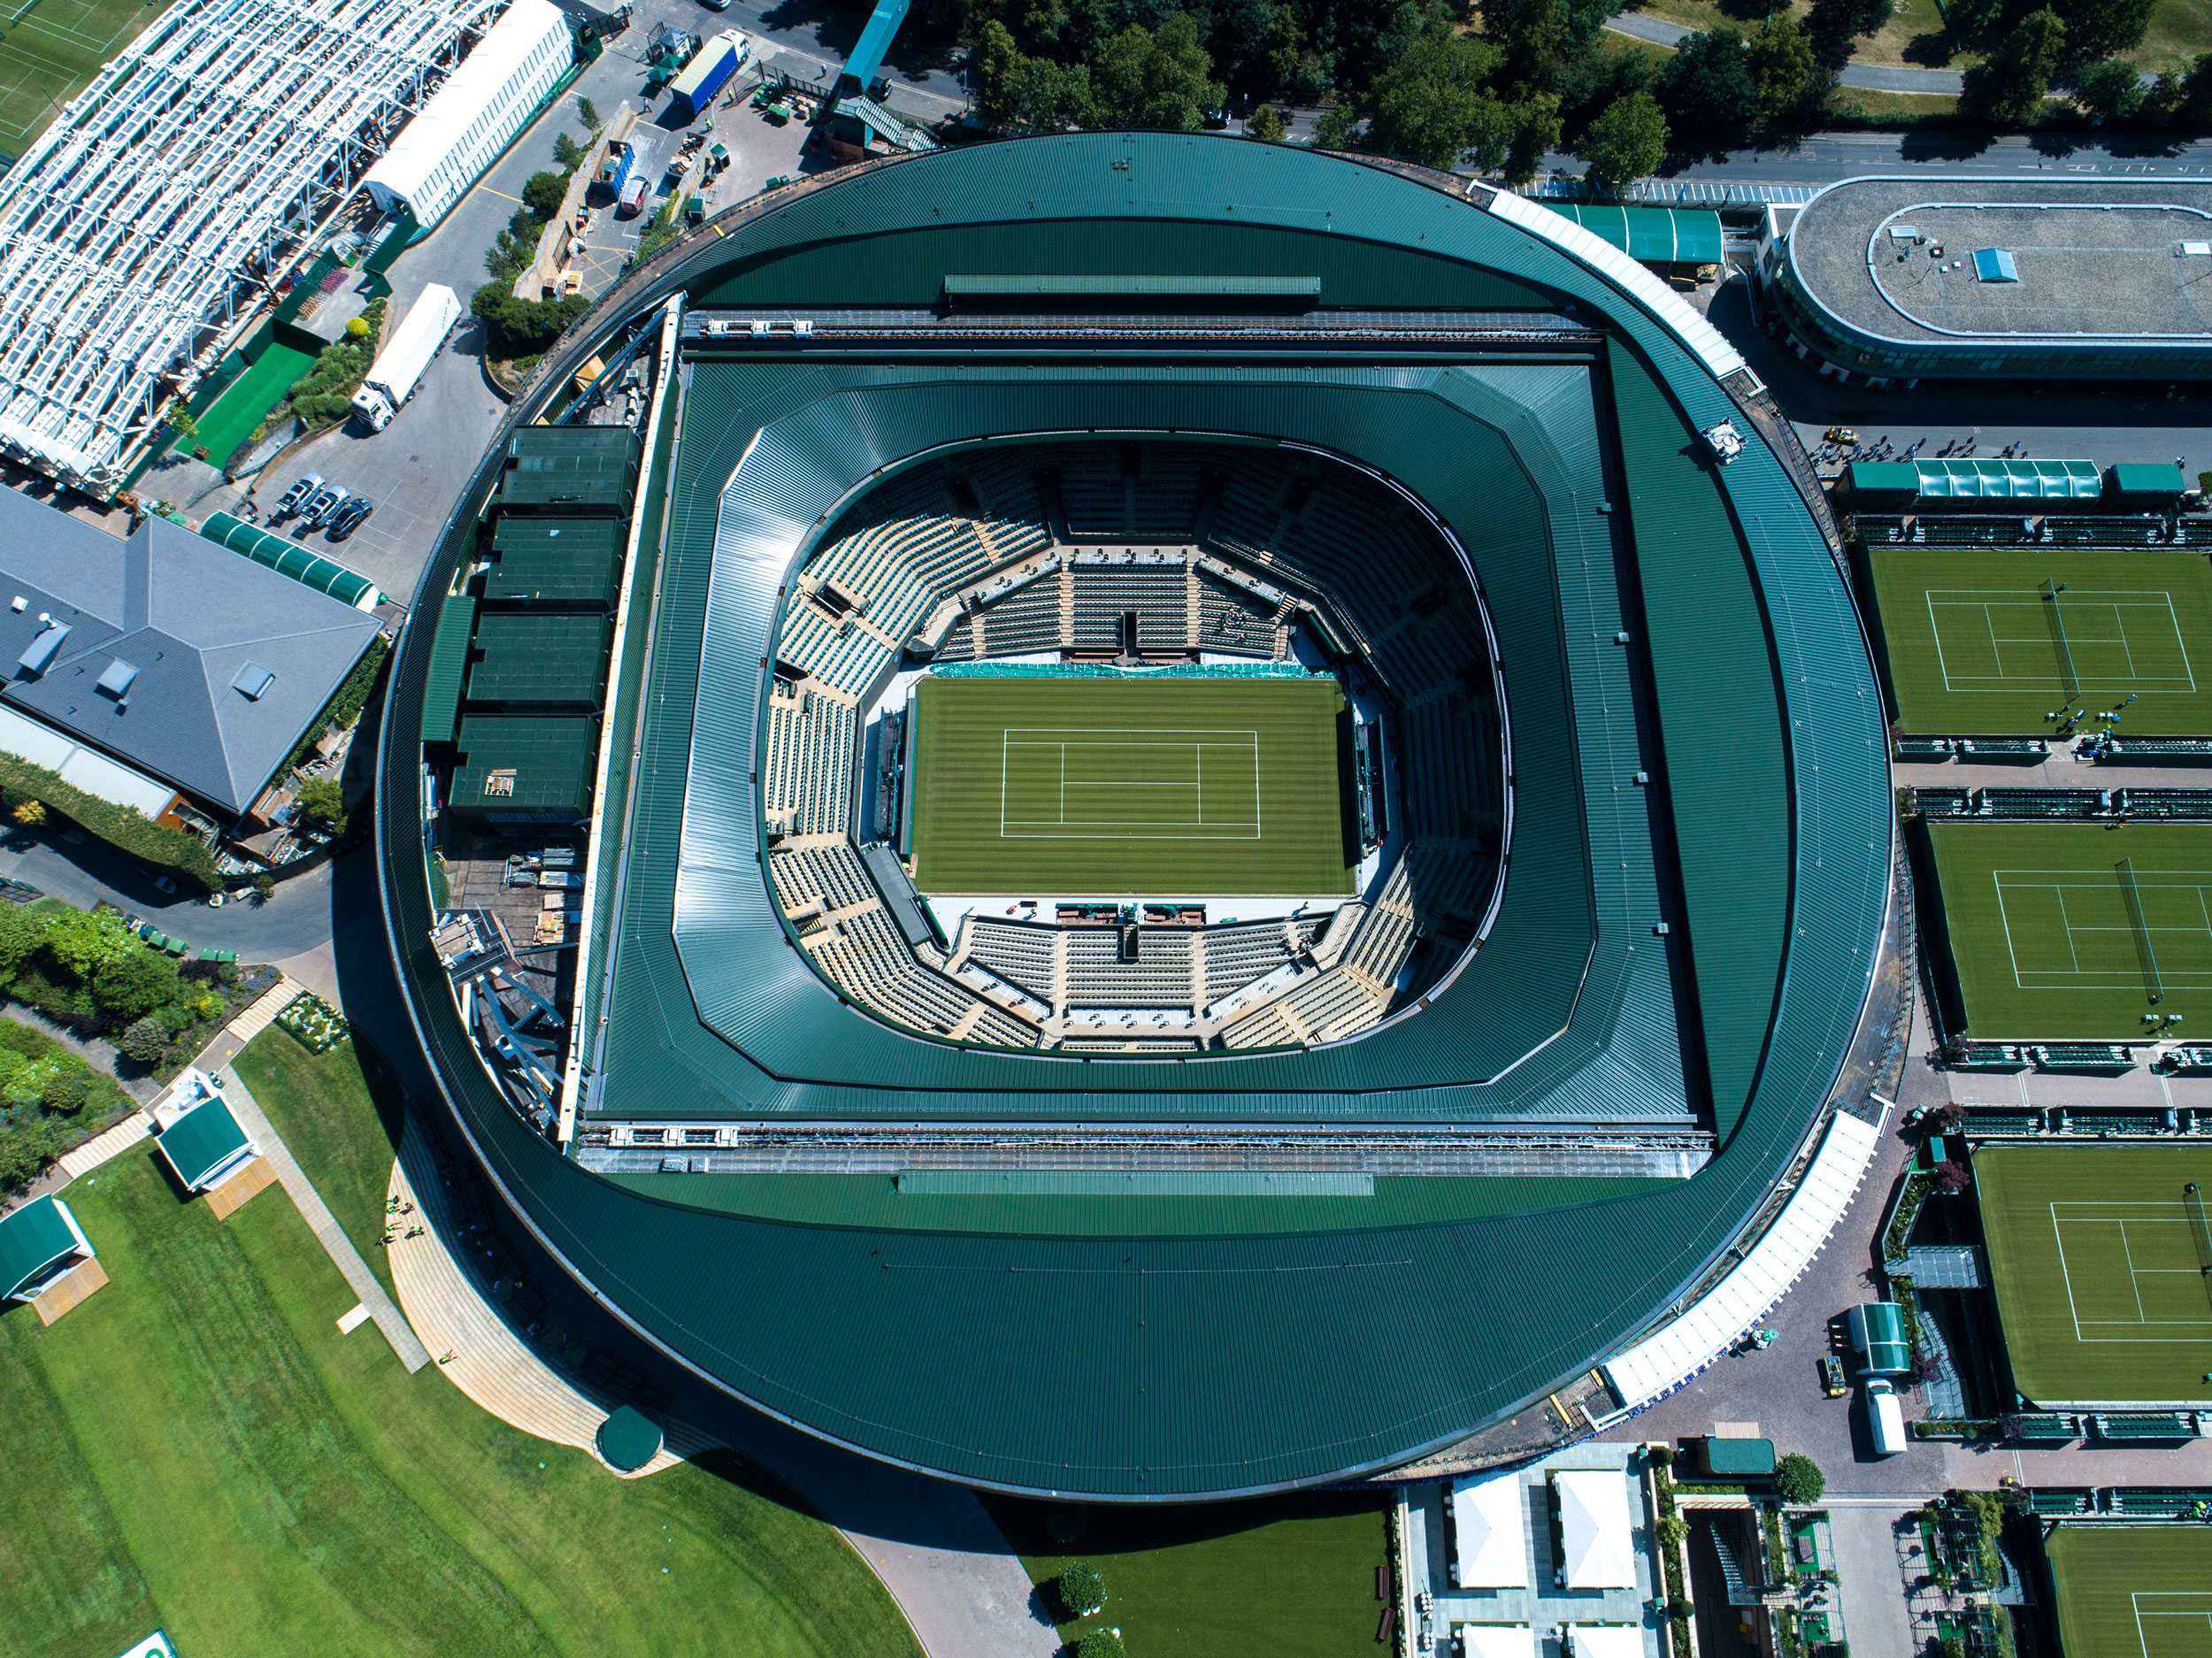 An aerial photograph of the No.1 court at the All England Lawn Tennis Club.